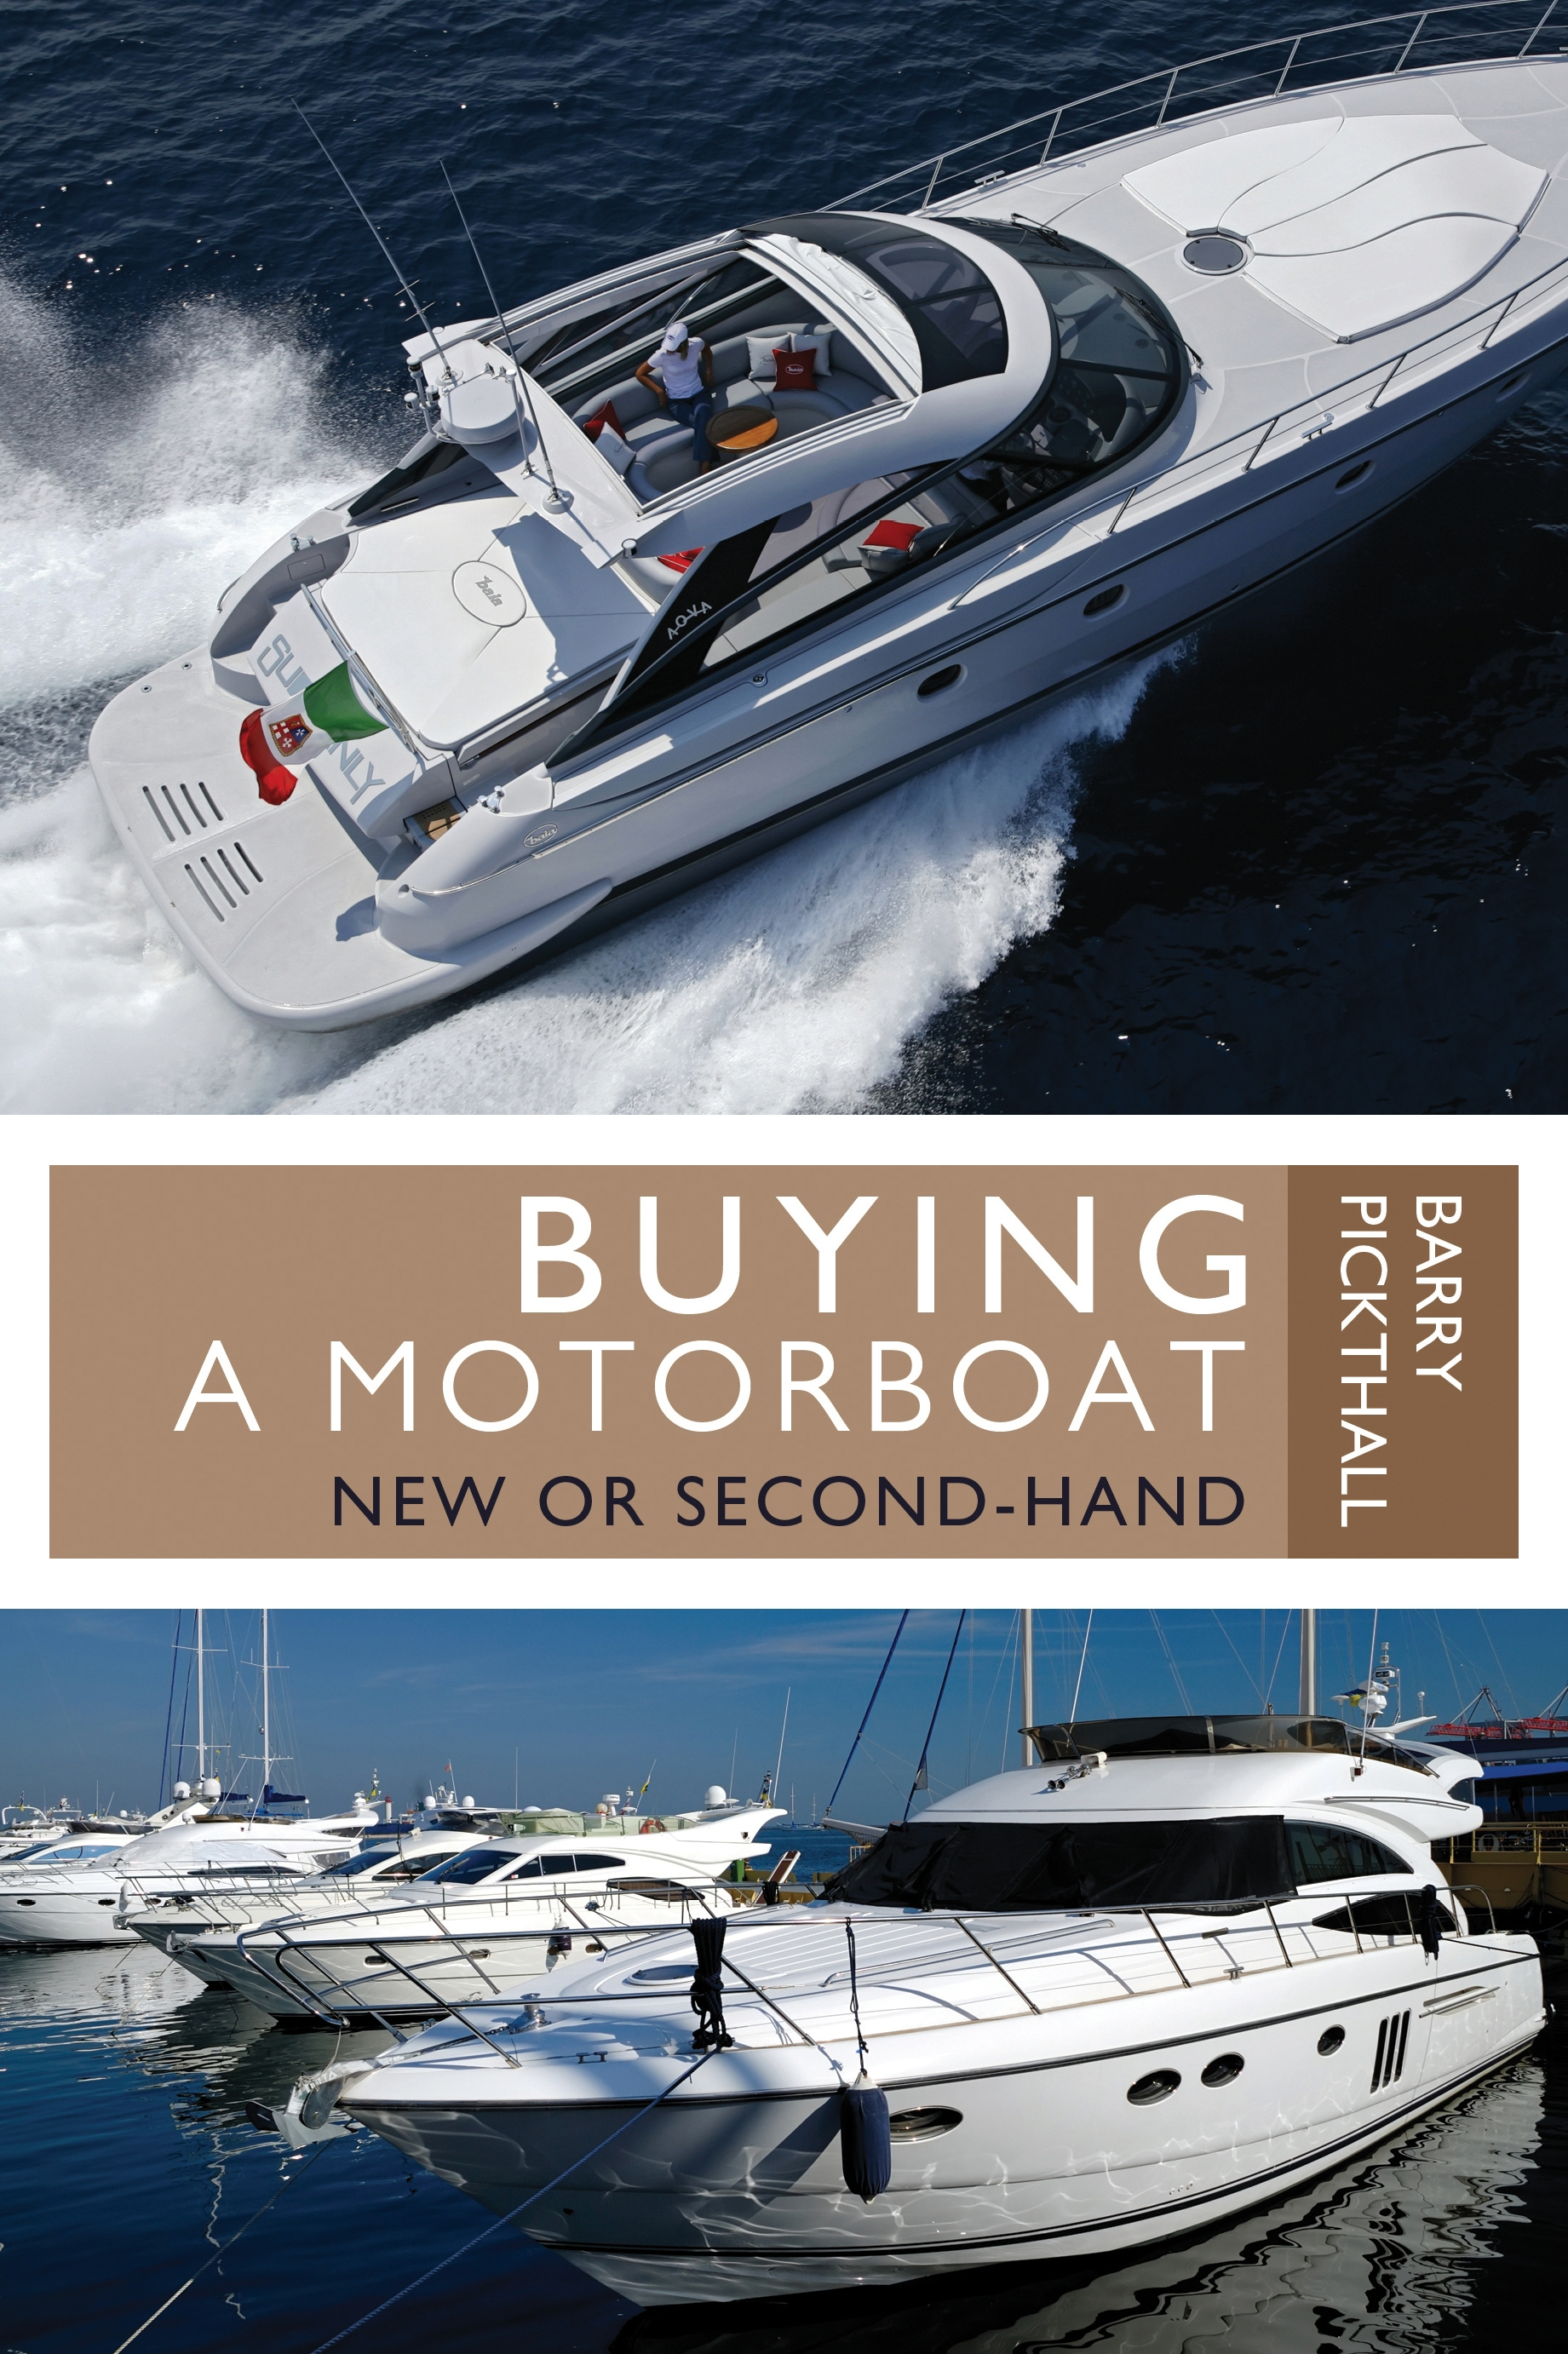 Buying a Motorboat New or Second-Hand